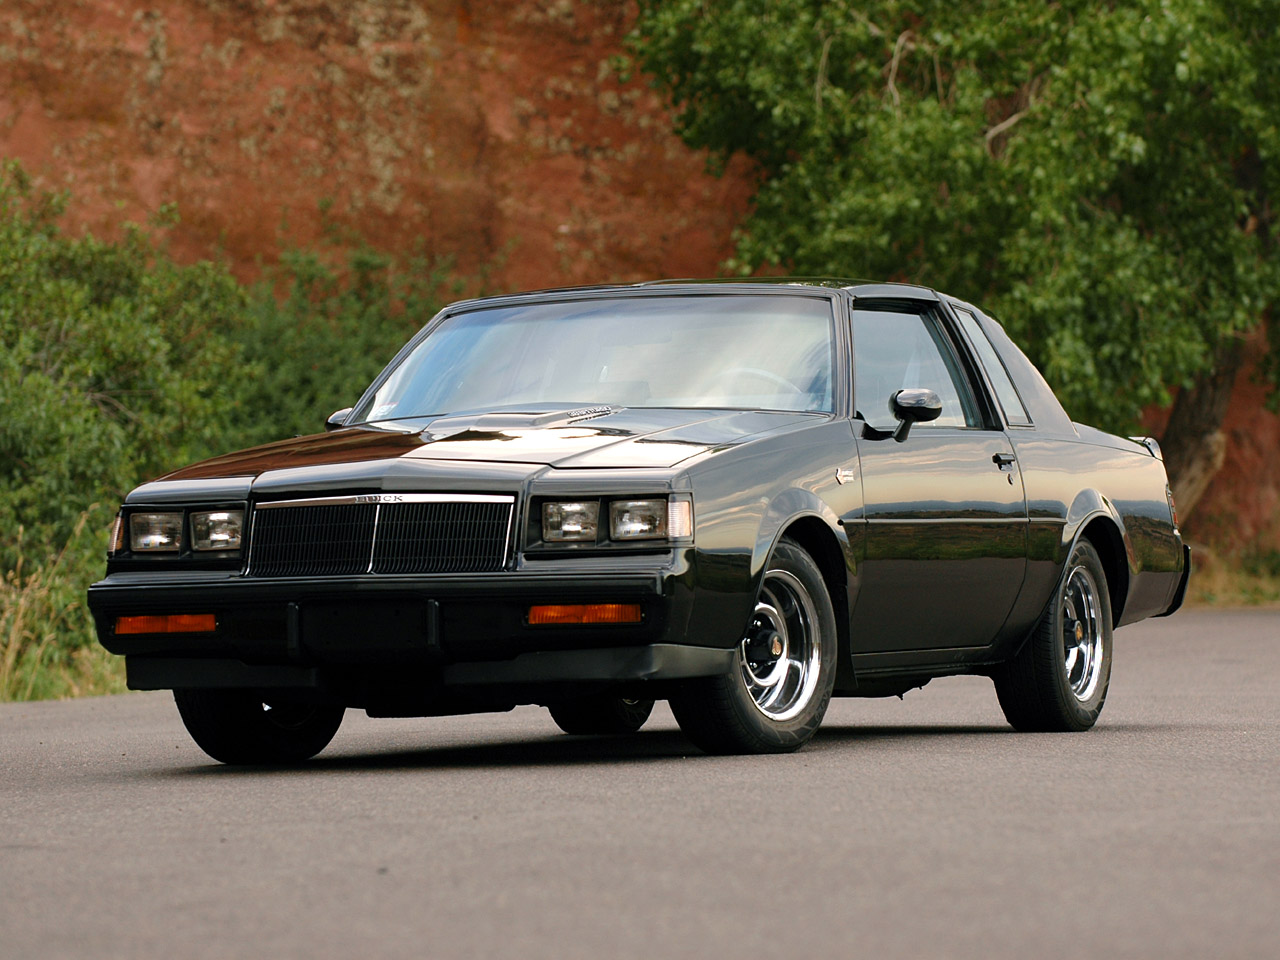 1987 buick grand national picture next 1987 buick grand national. Cars Review. Best American Auto & Cars Review